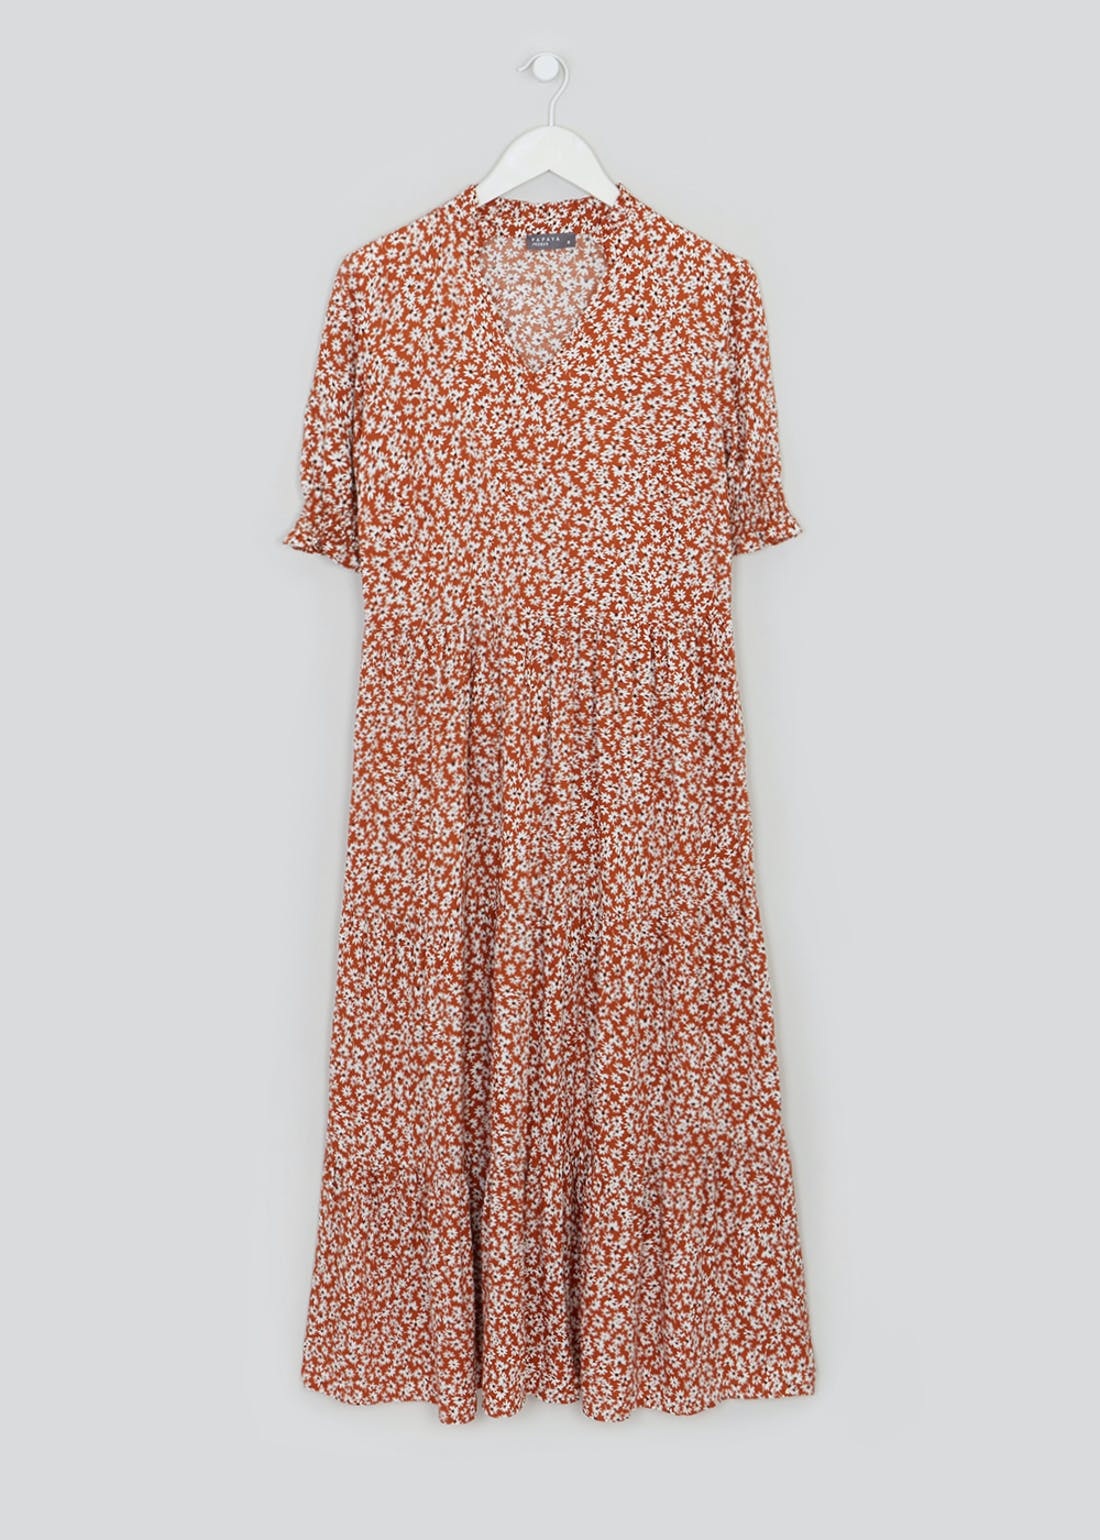 Brown Short Sleeve Floral Tiered Midi Dress